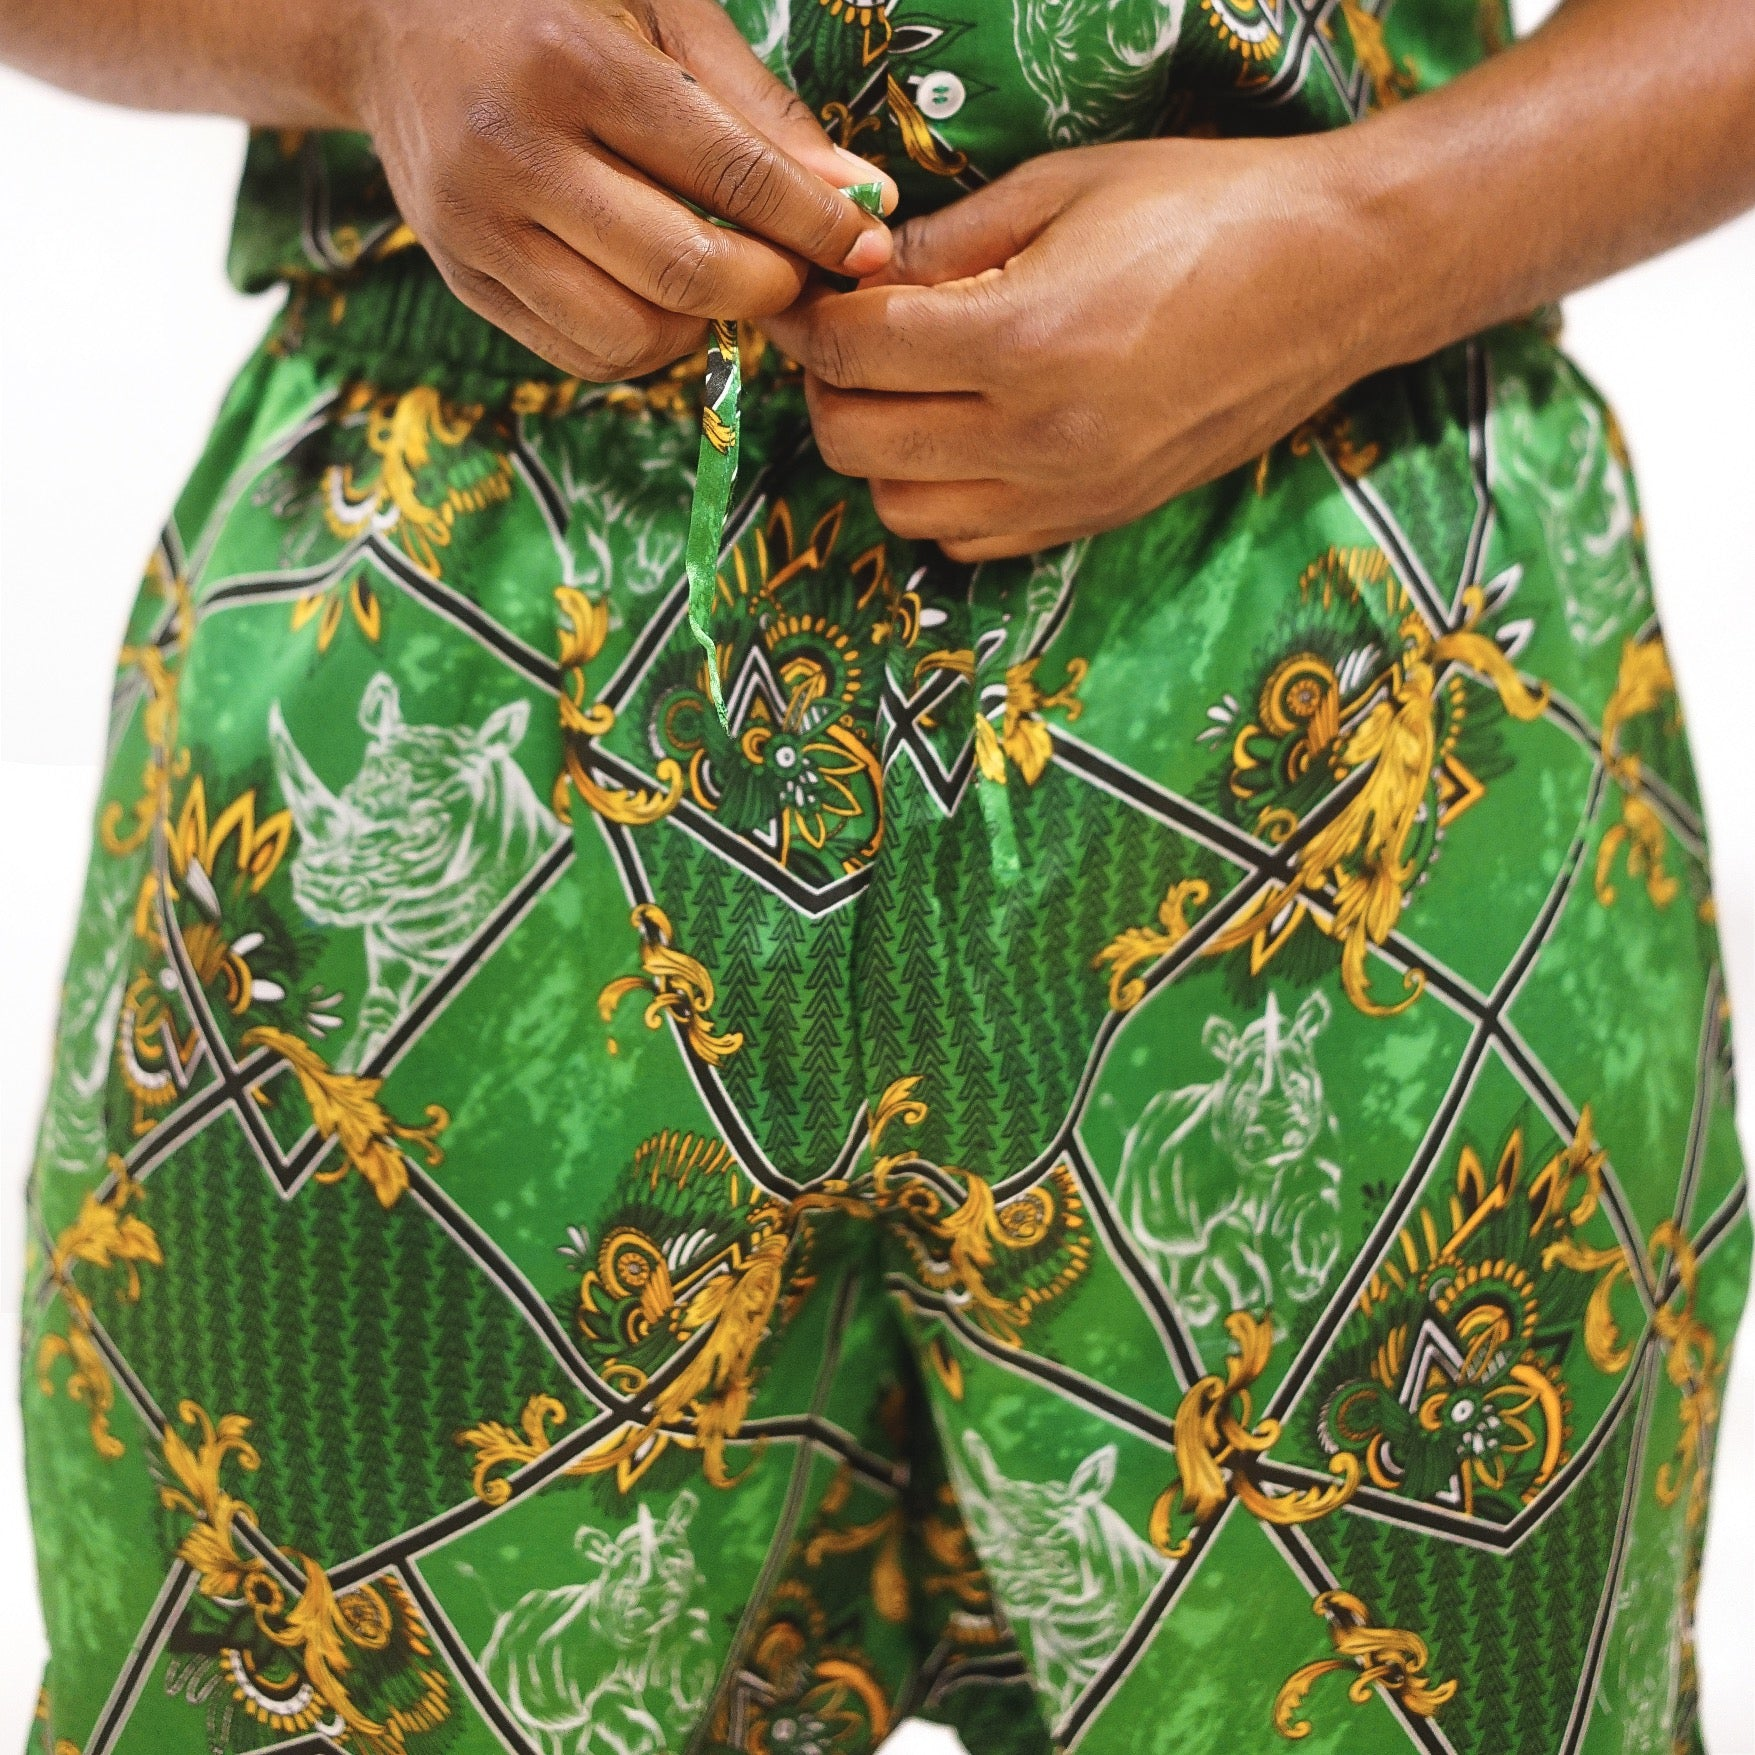 Mens Green Shorts, Printed, Silk Co-ord, Two-piece